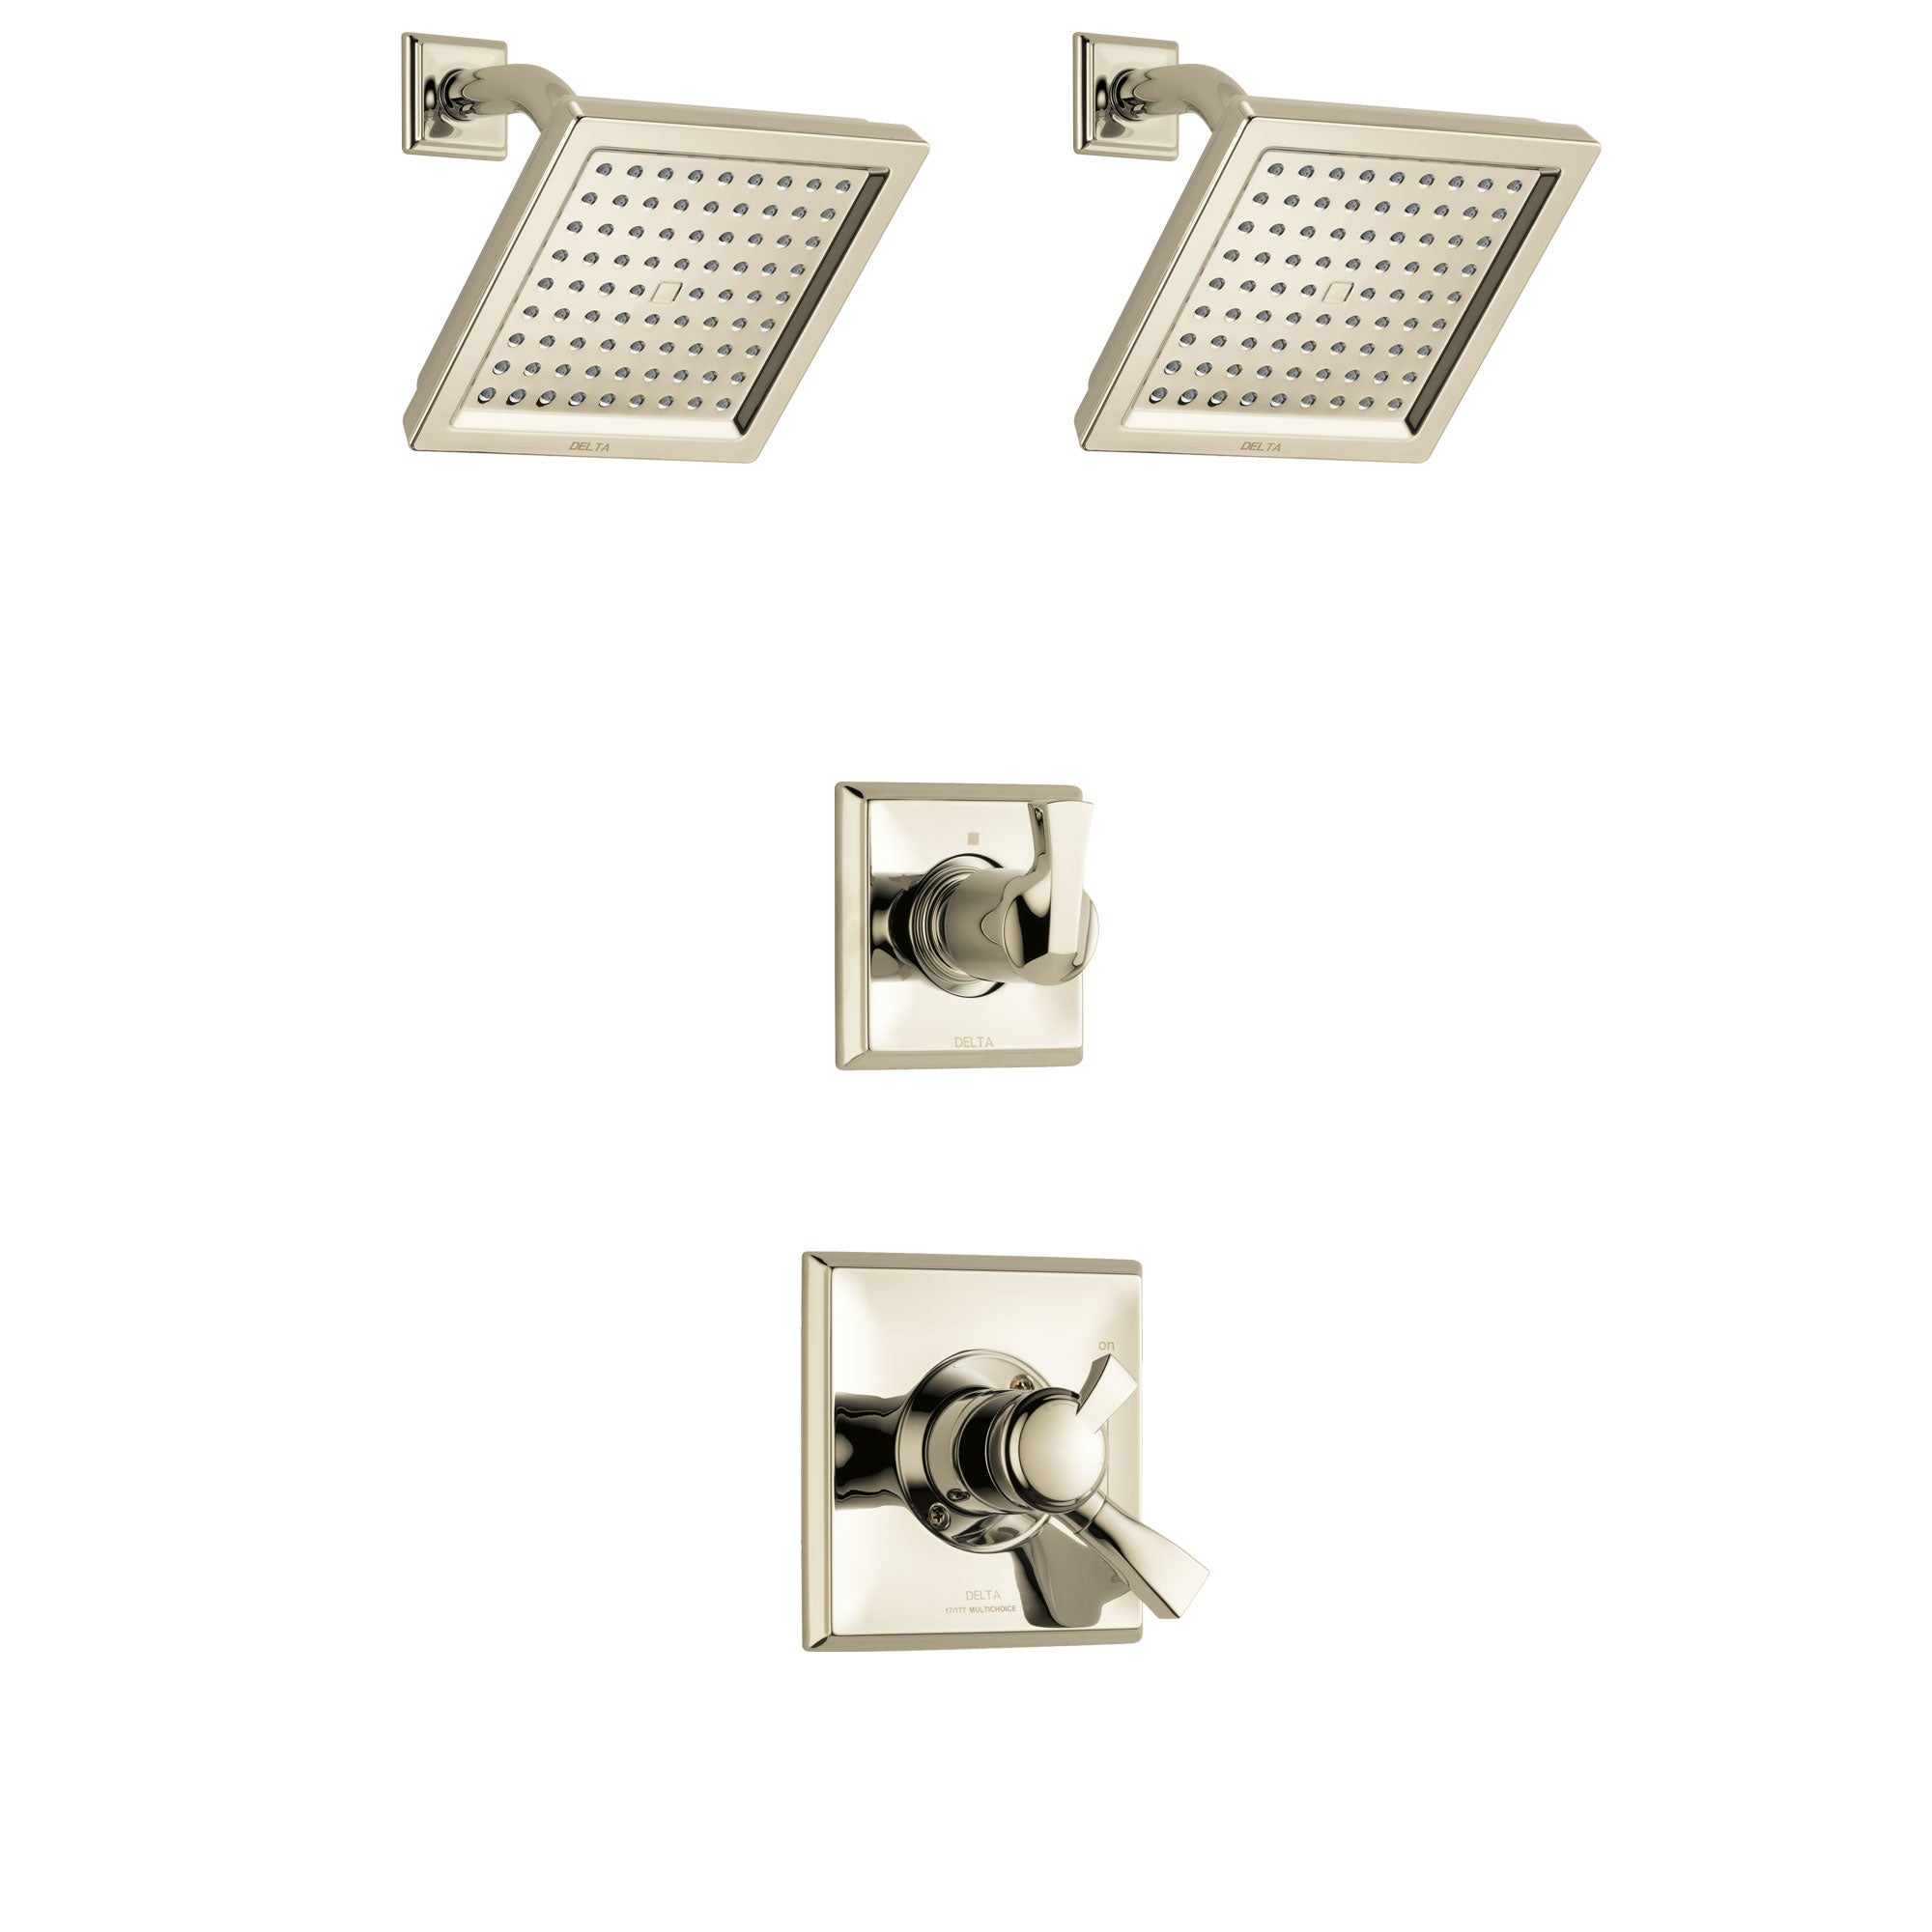 Delta Dryden Polished Nickel Finish Shower System with Dual Control Handle, 3-Setting Diverter, 2 Showerheads SS172511PN4